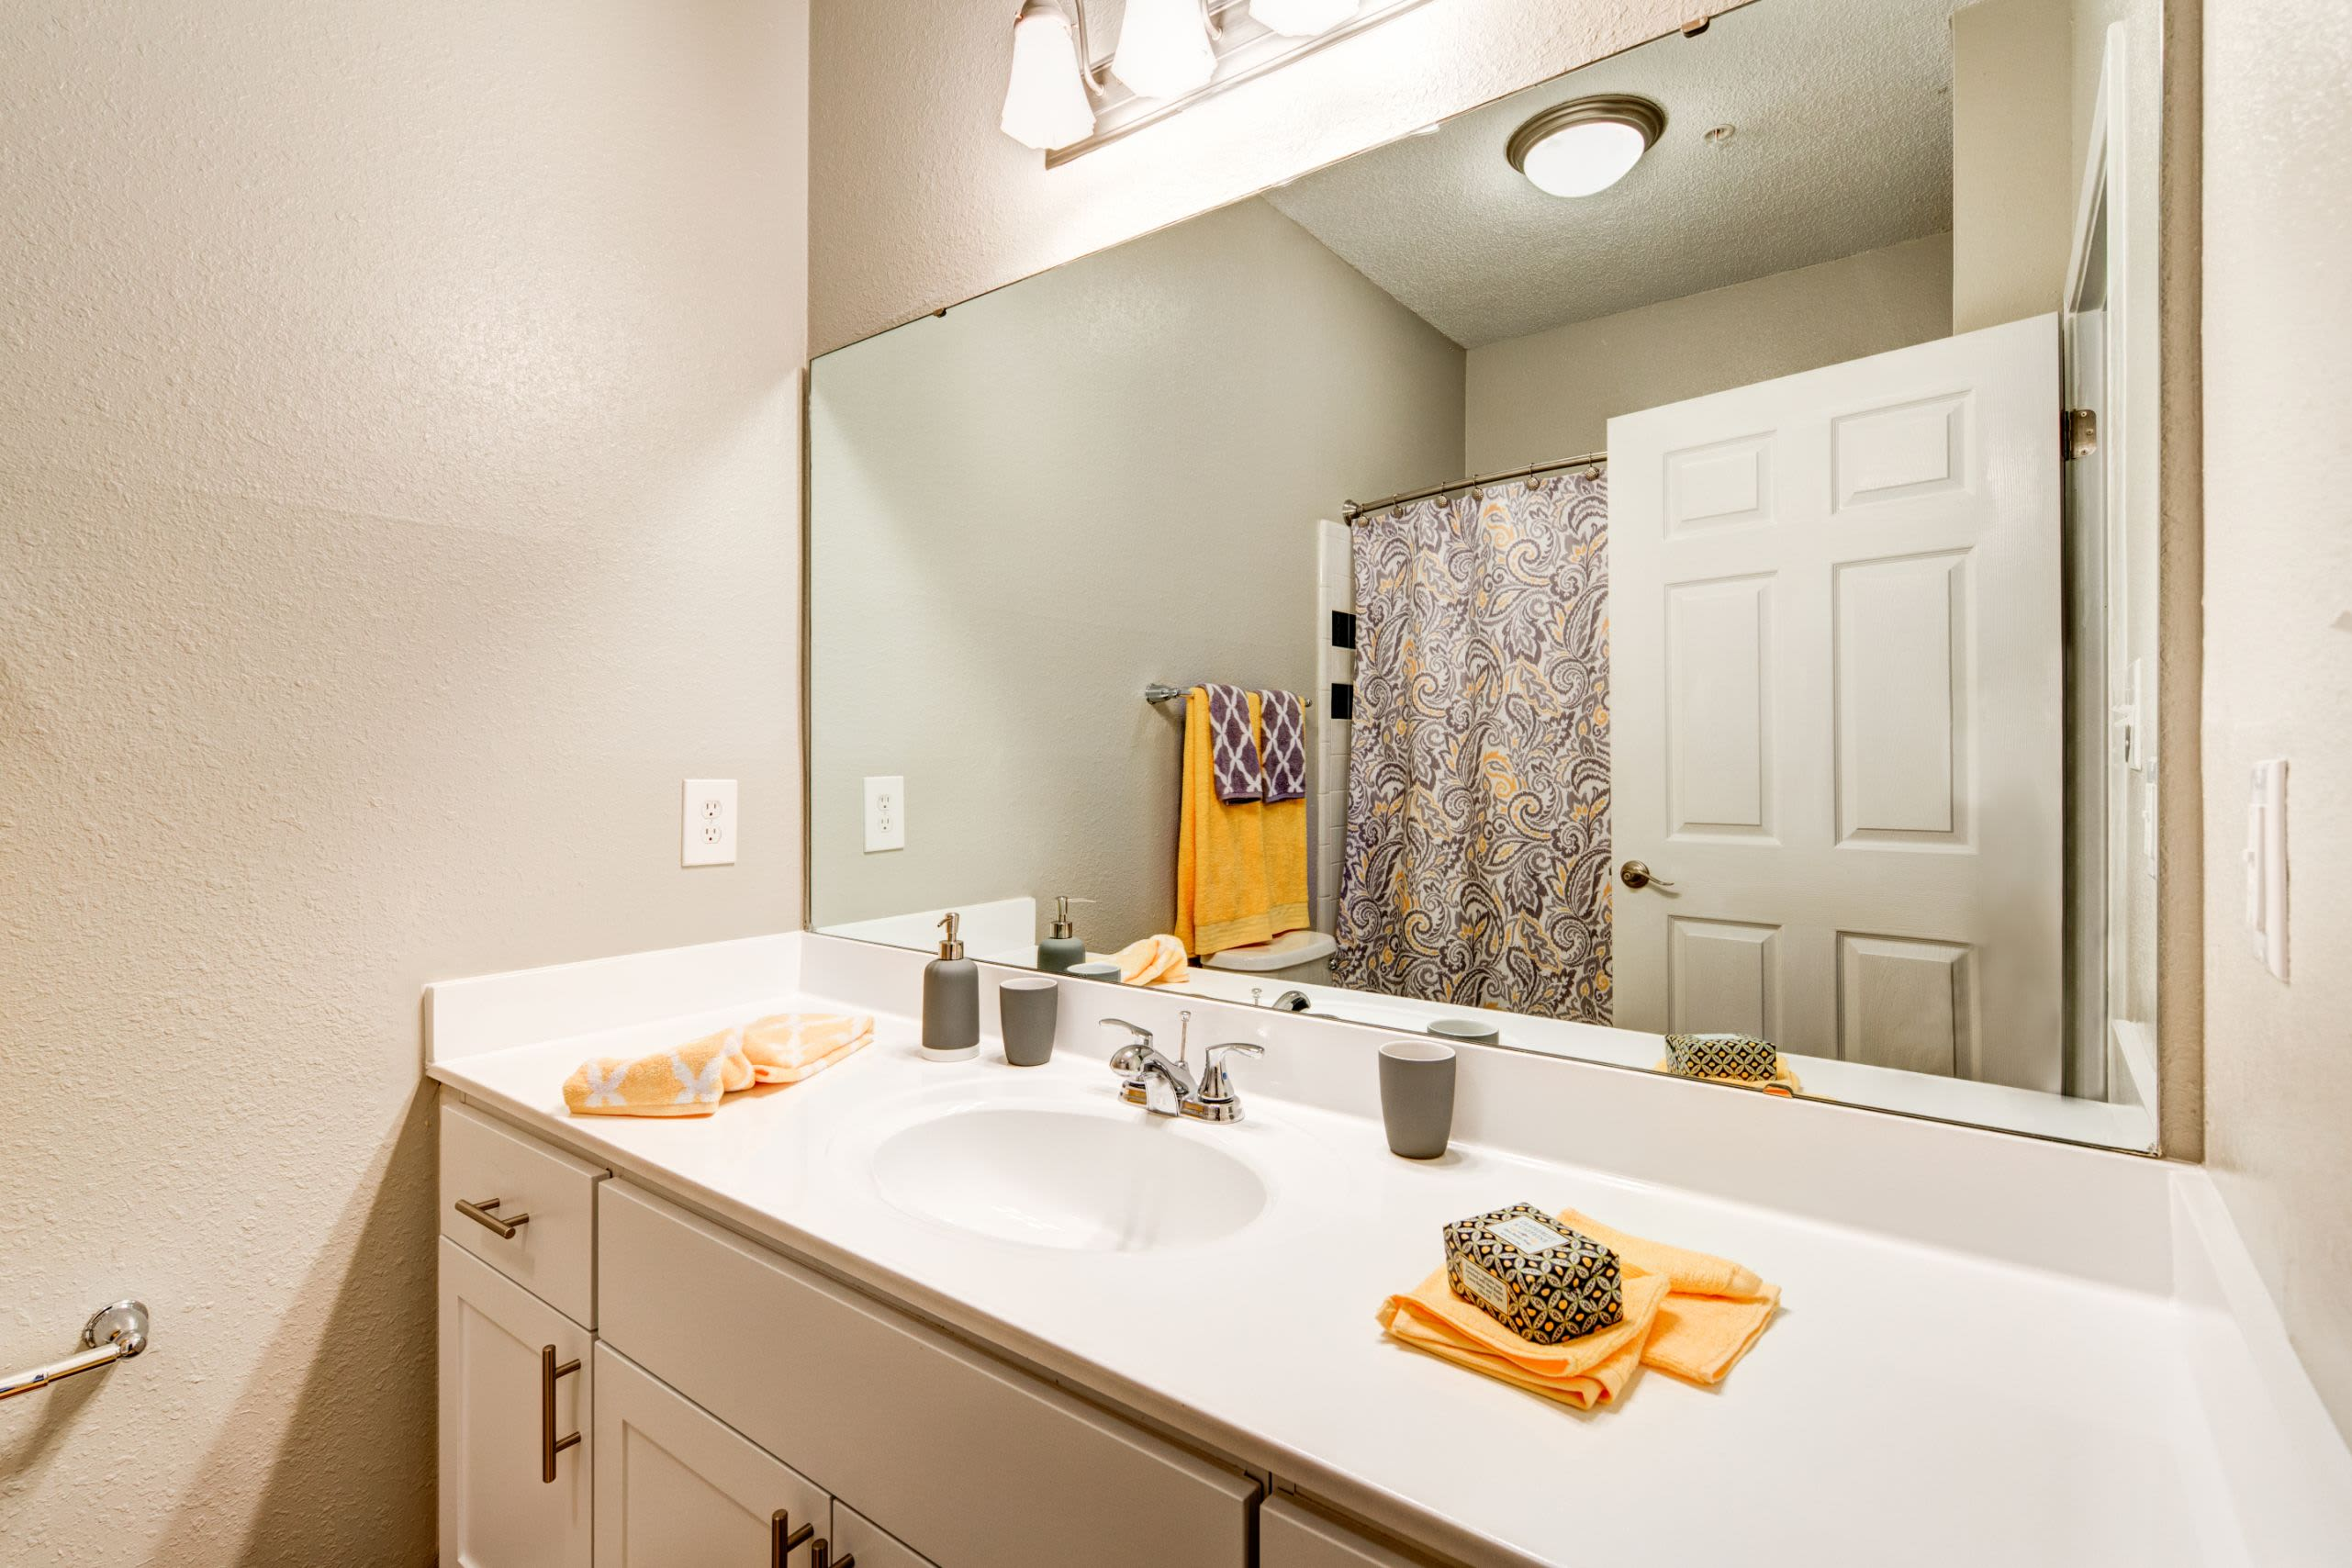 Bathroom with white cabinets and a large mirror at Marquis on Edwards Mill in Raleigh, North Carolina